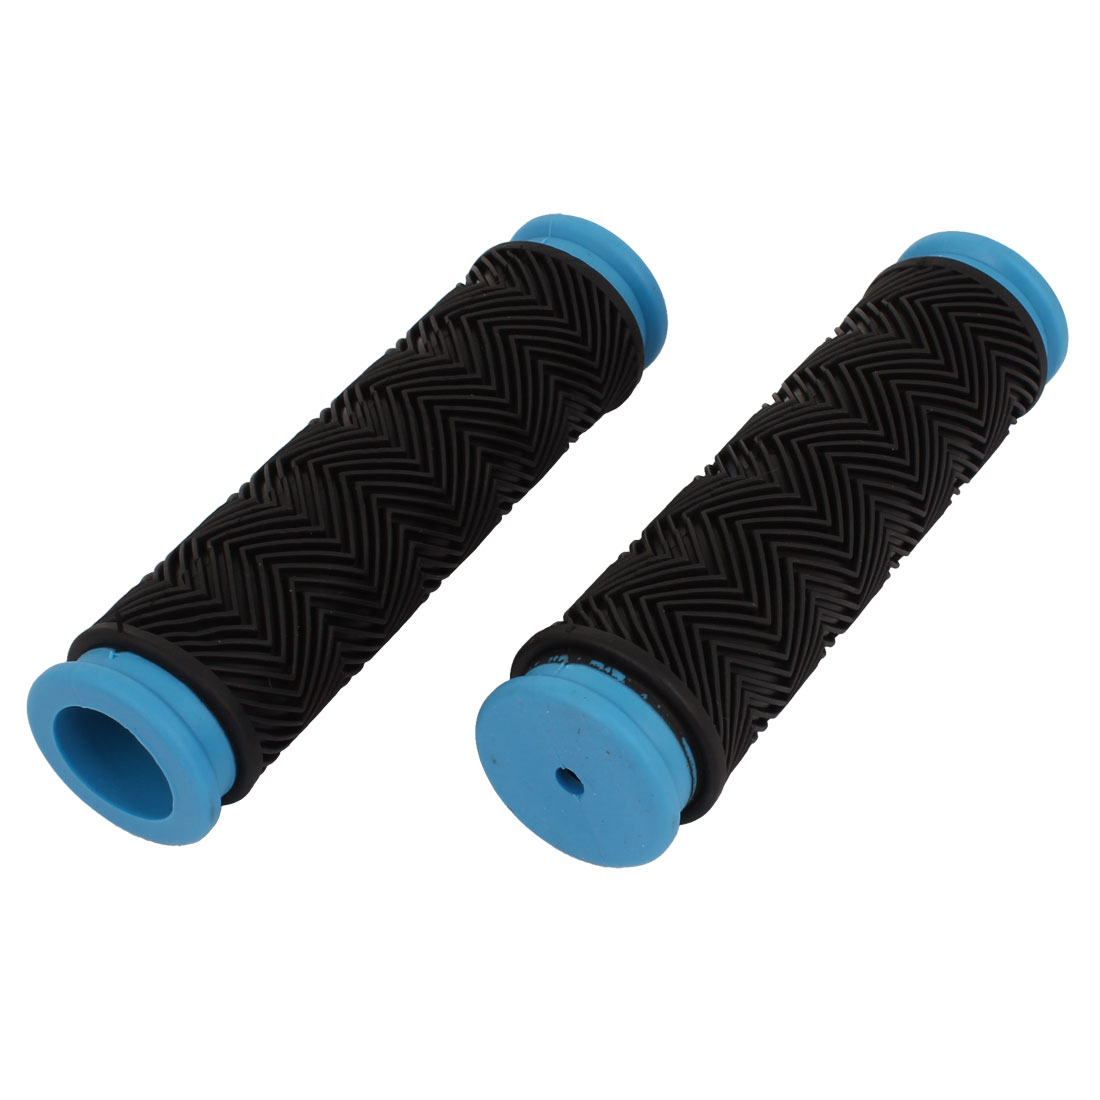 Pair Blue Black Rubber Antislip Cycling Bicycle Bike Handle Bar Cover Handlebar Grip 125mm Length